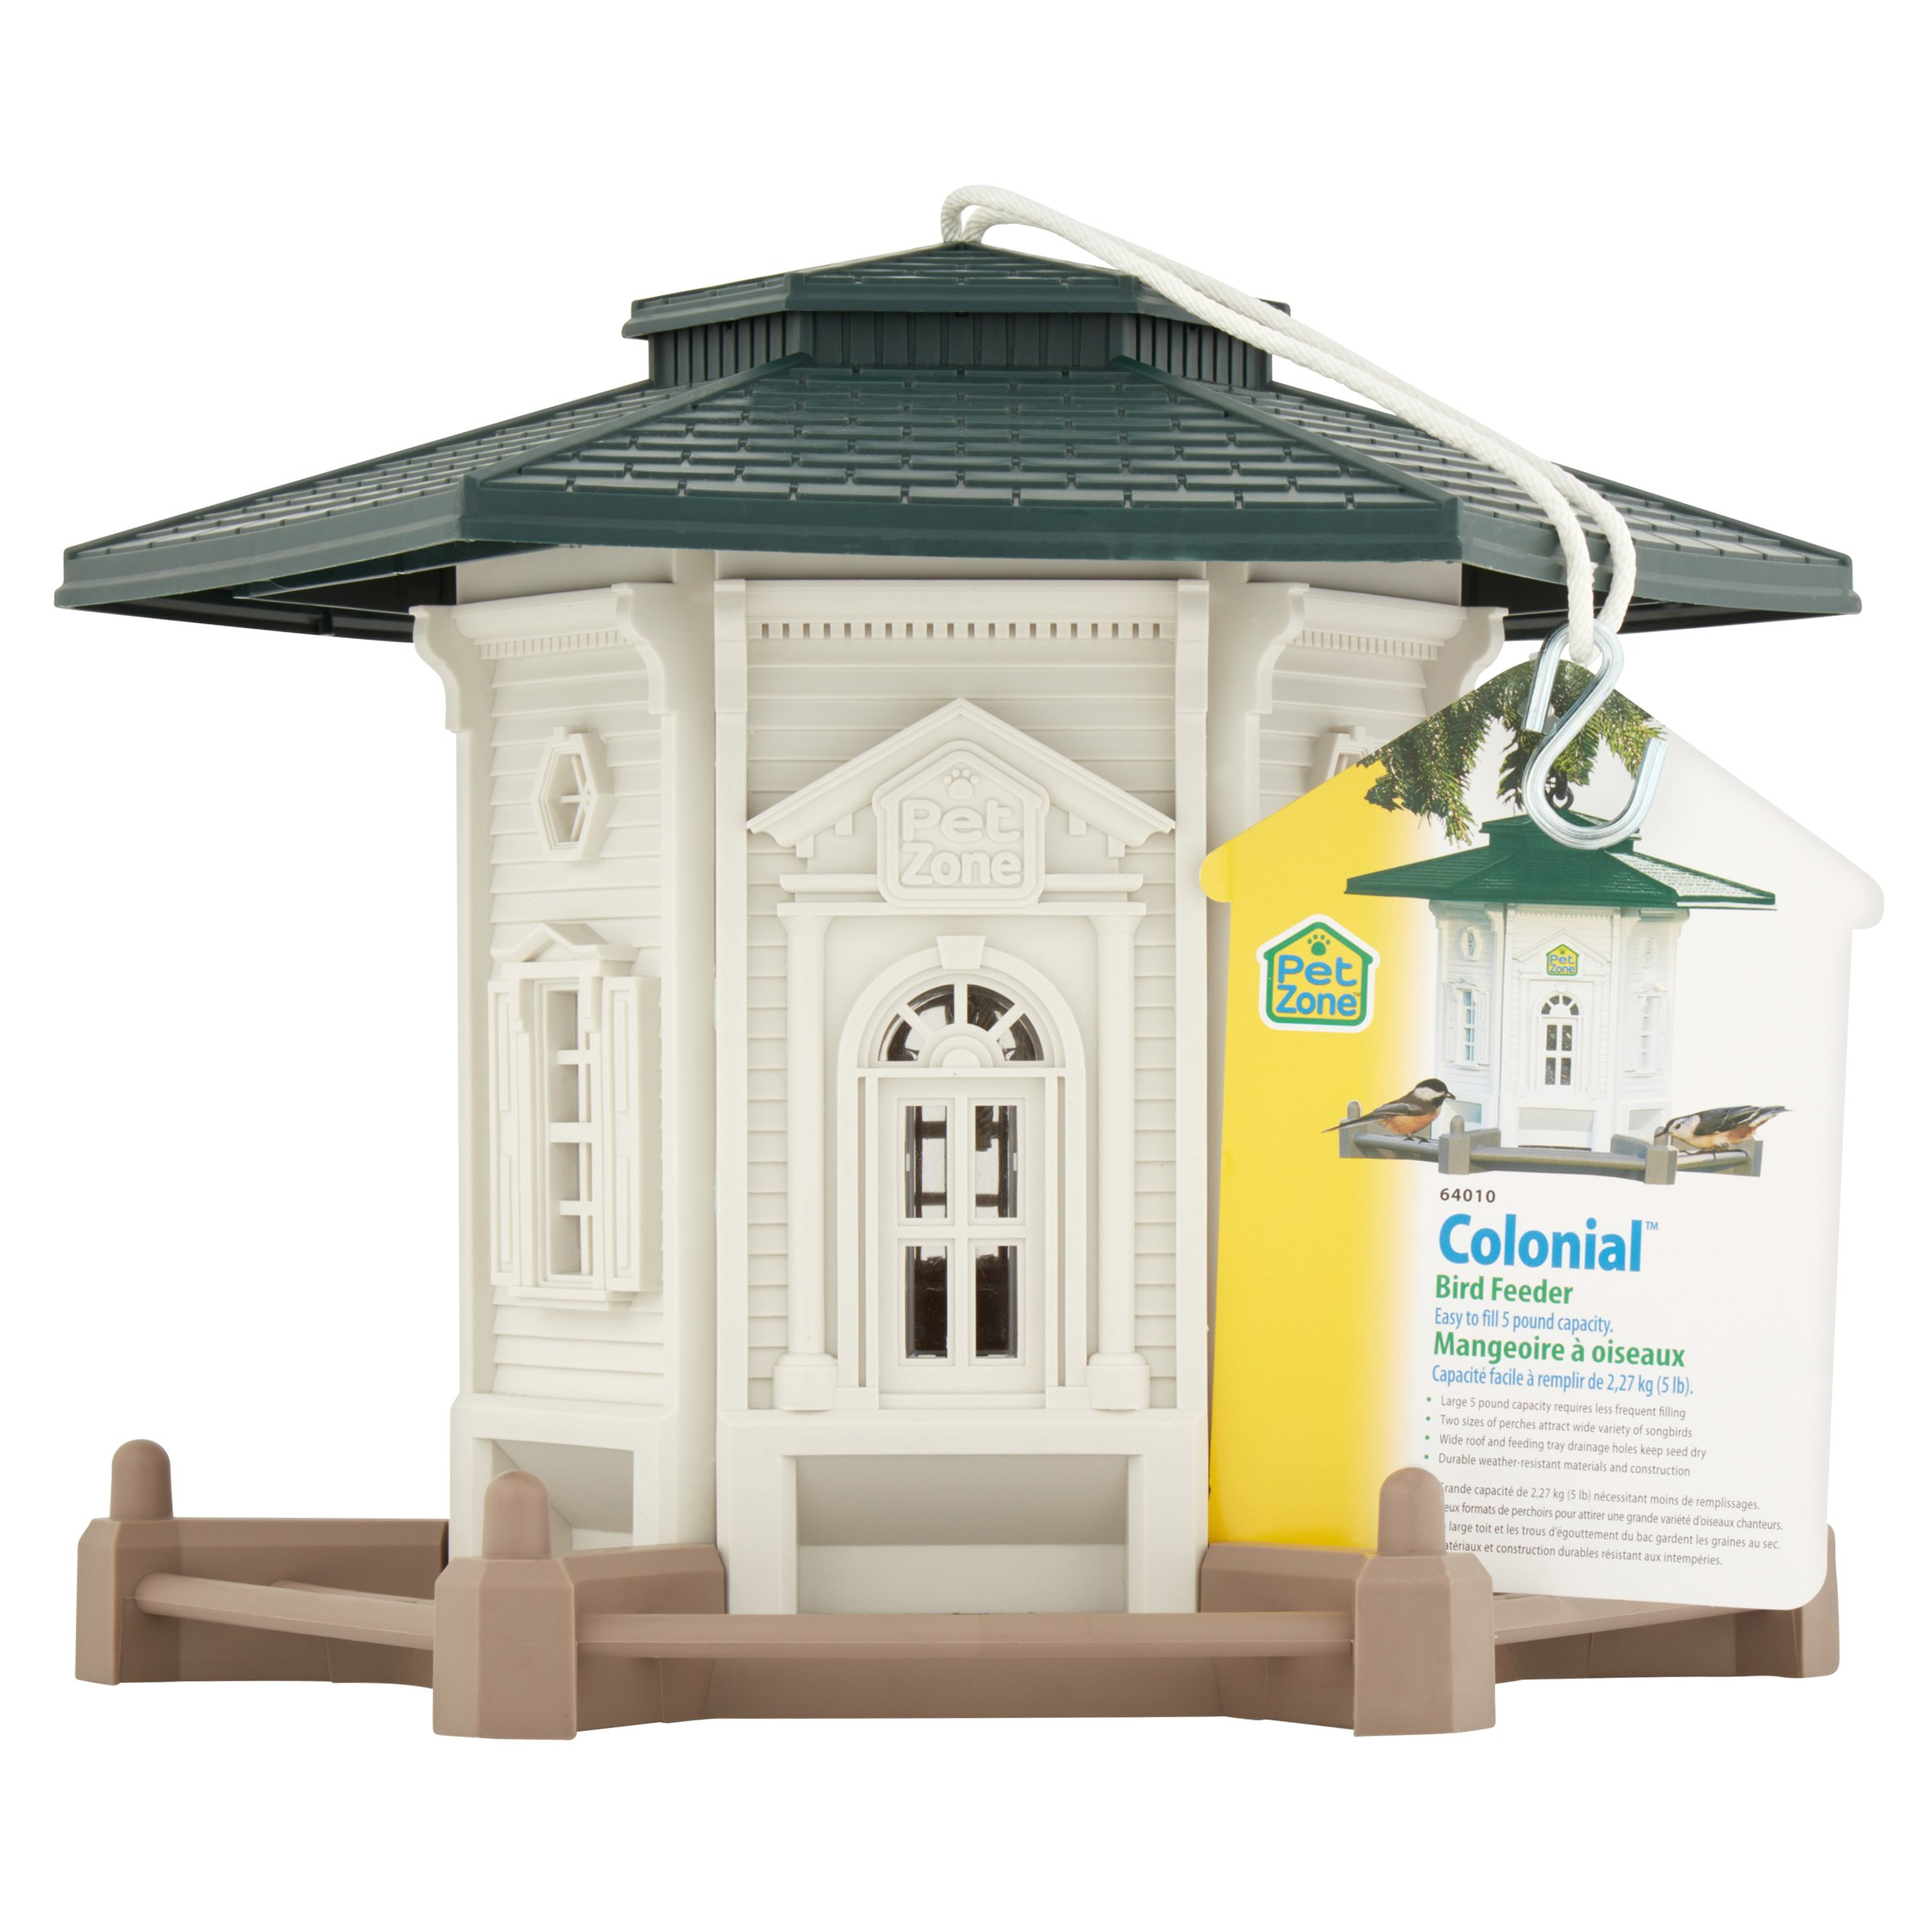 Pet Zone Colonial Birdfeeder, 1.0 CT by Pet Zone Products